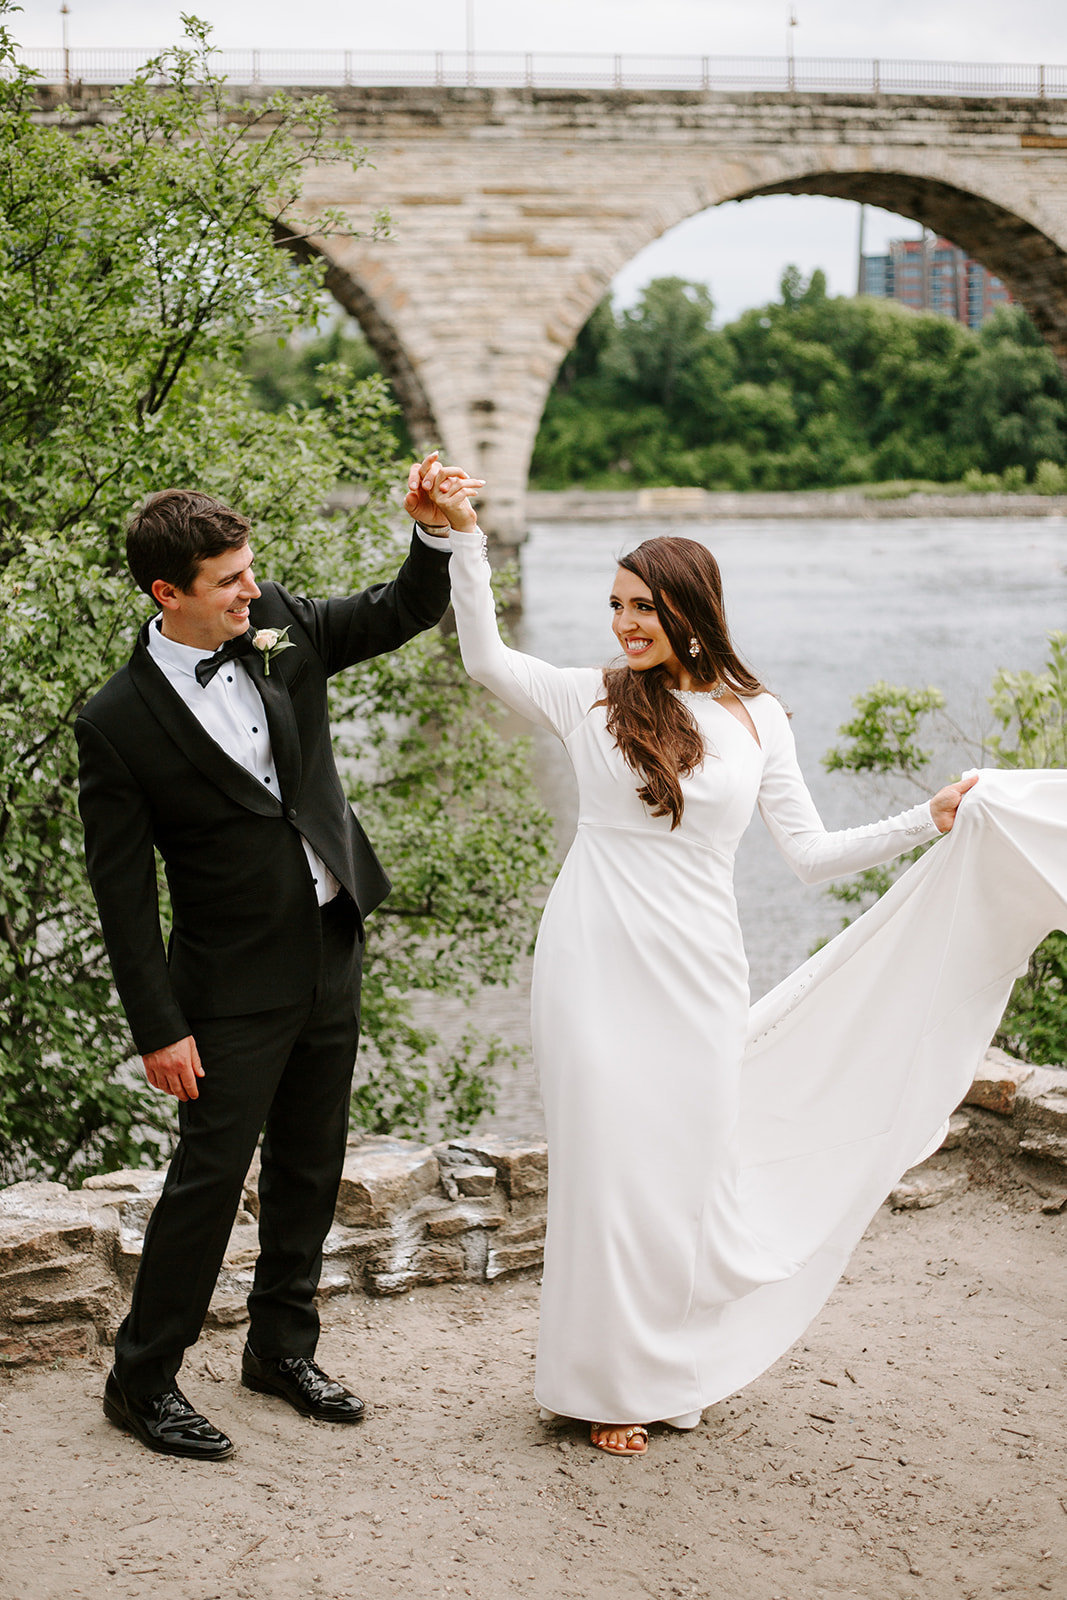 Bride throwing her wedding dress train in the air holding her husbands hand during their Minneapolis Wedding day